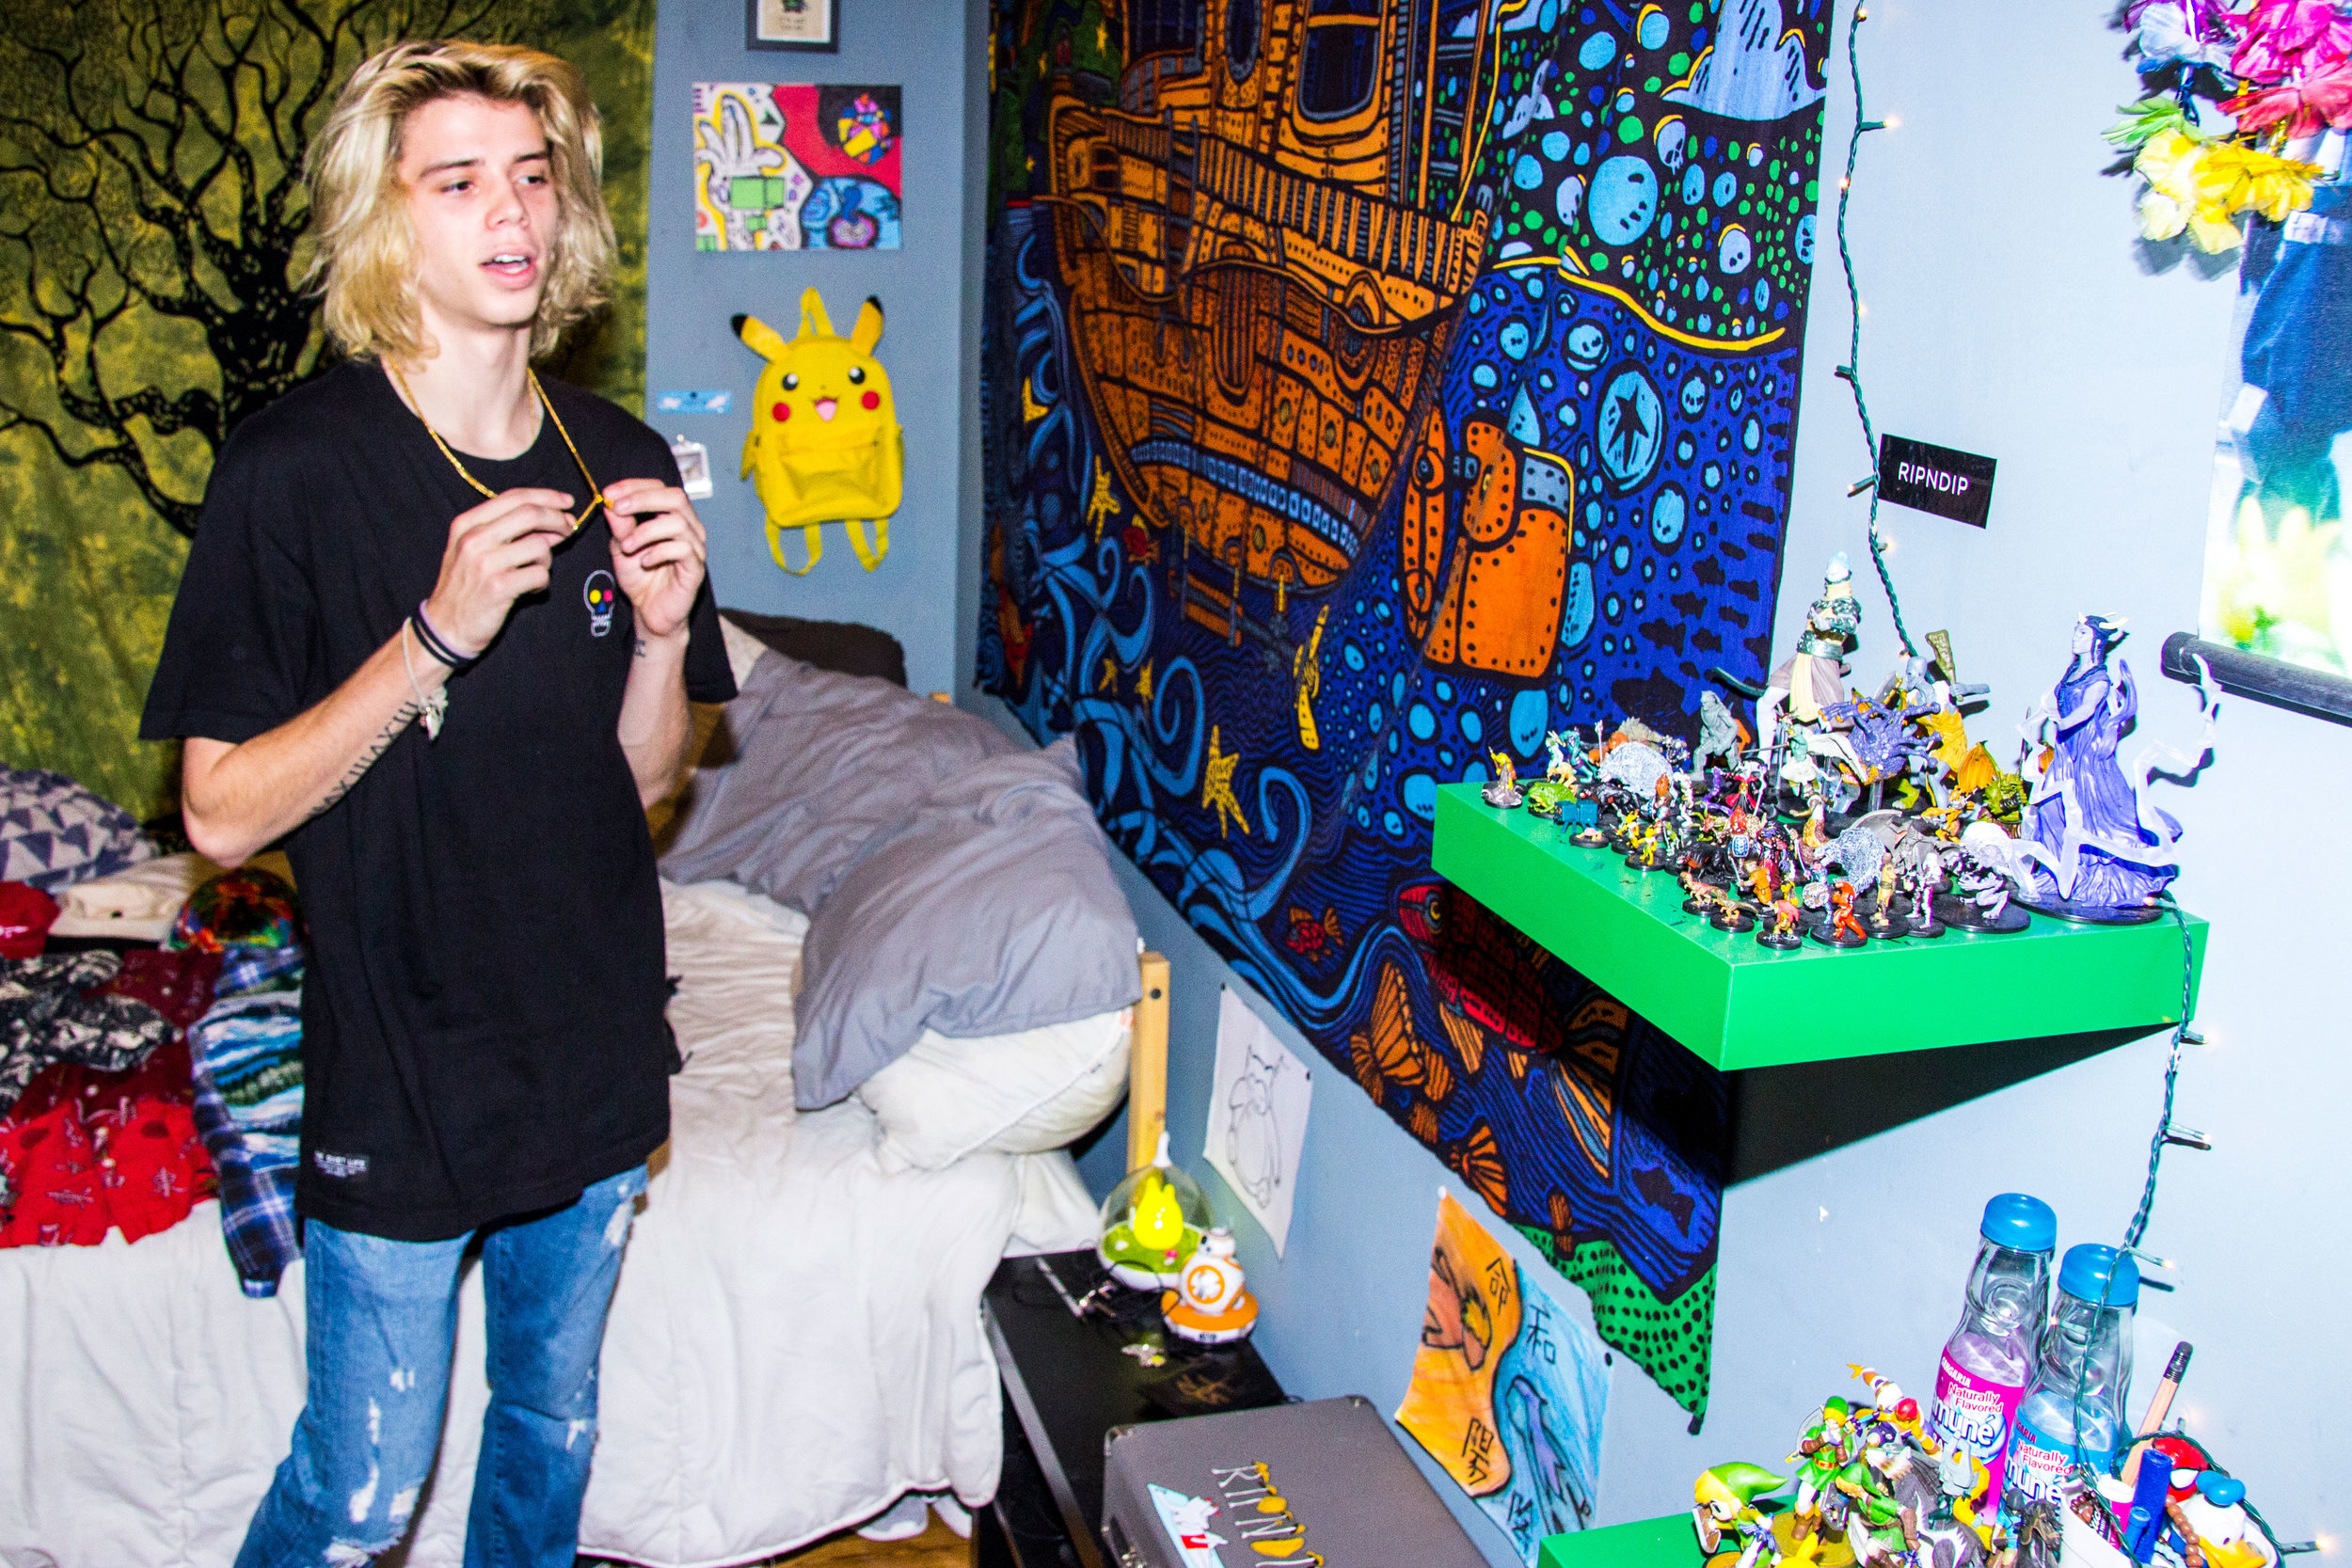 Austin is fascinated by Japanese and Anime culture and loves to paint his take on them. Also pictured: his dungeons and dragons figurines.